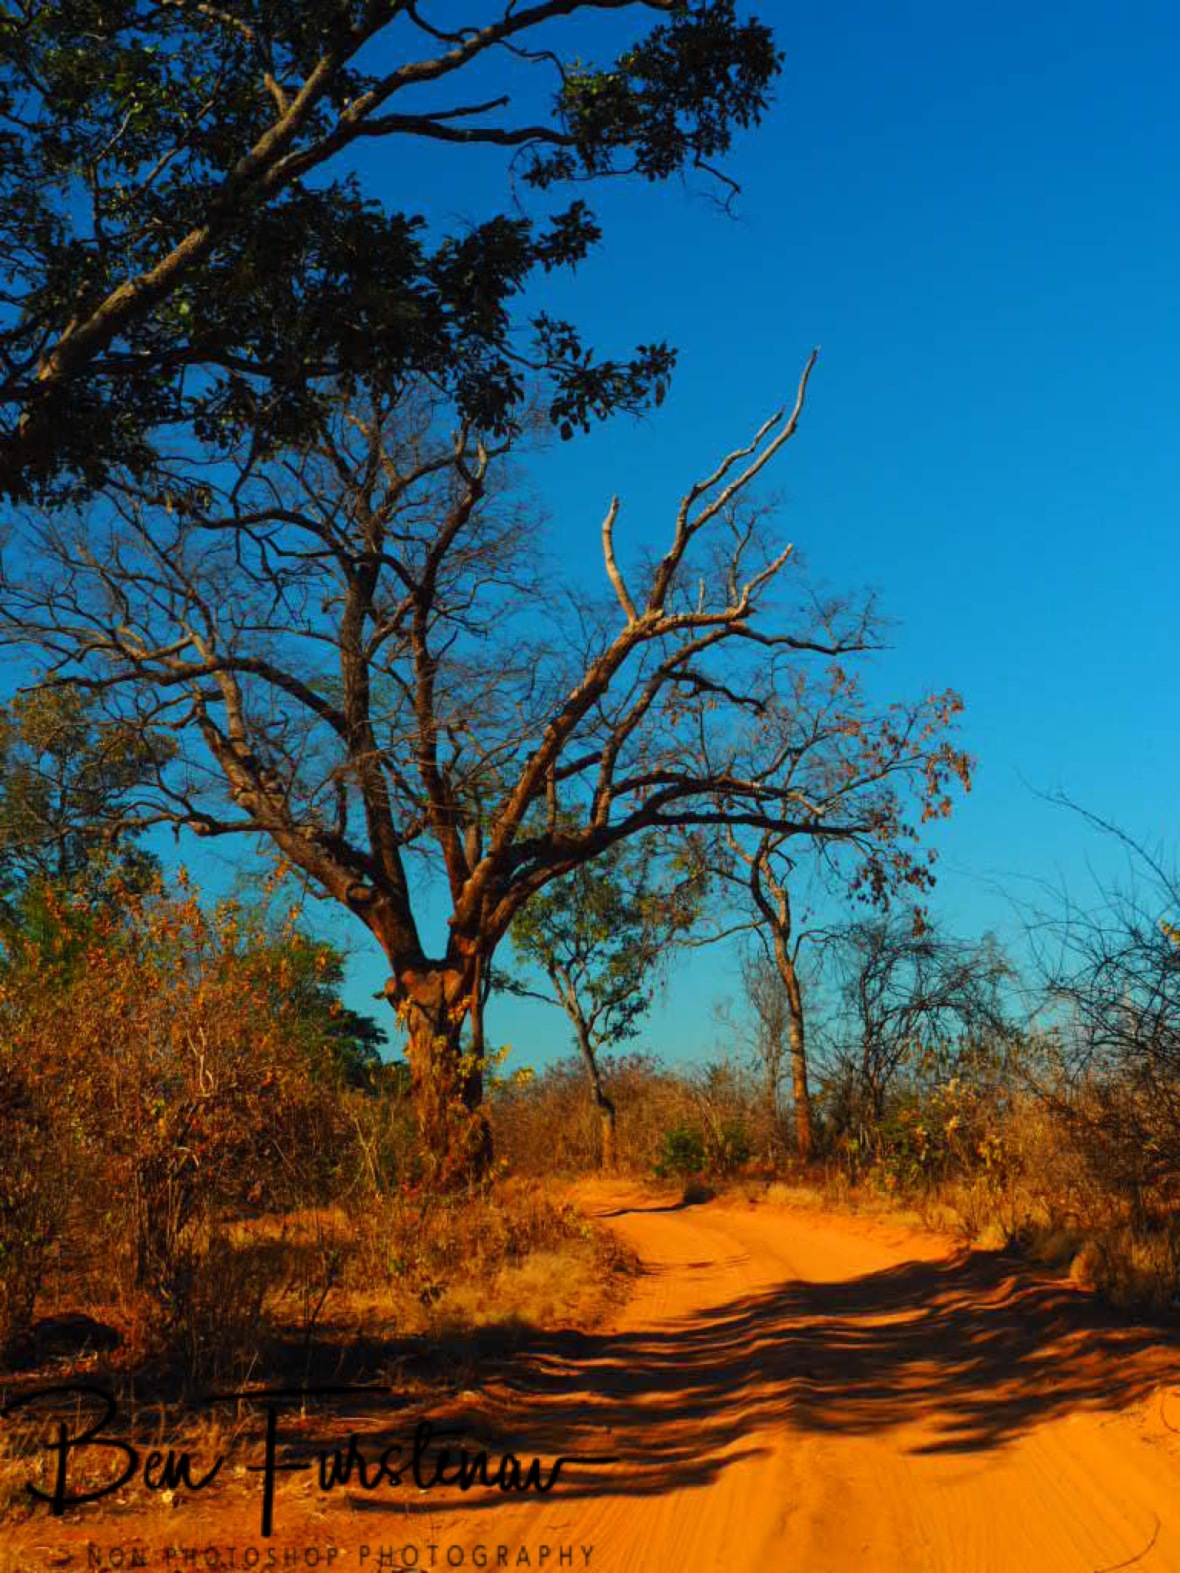 Red centre of Lower Zambezi Valley, Zambia